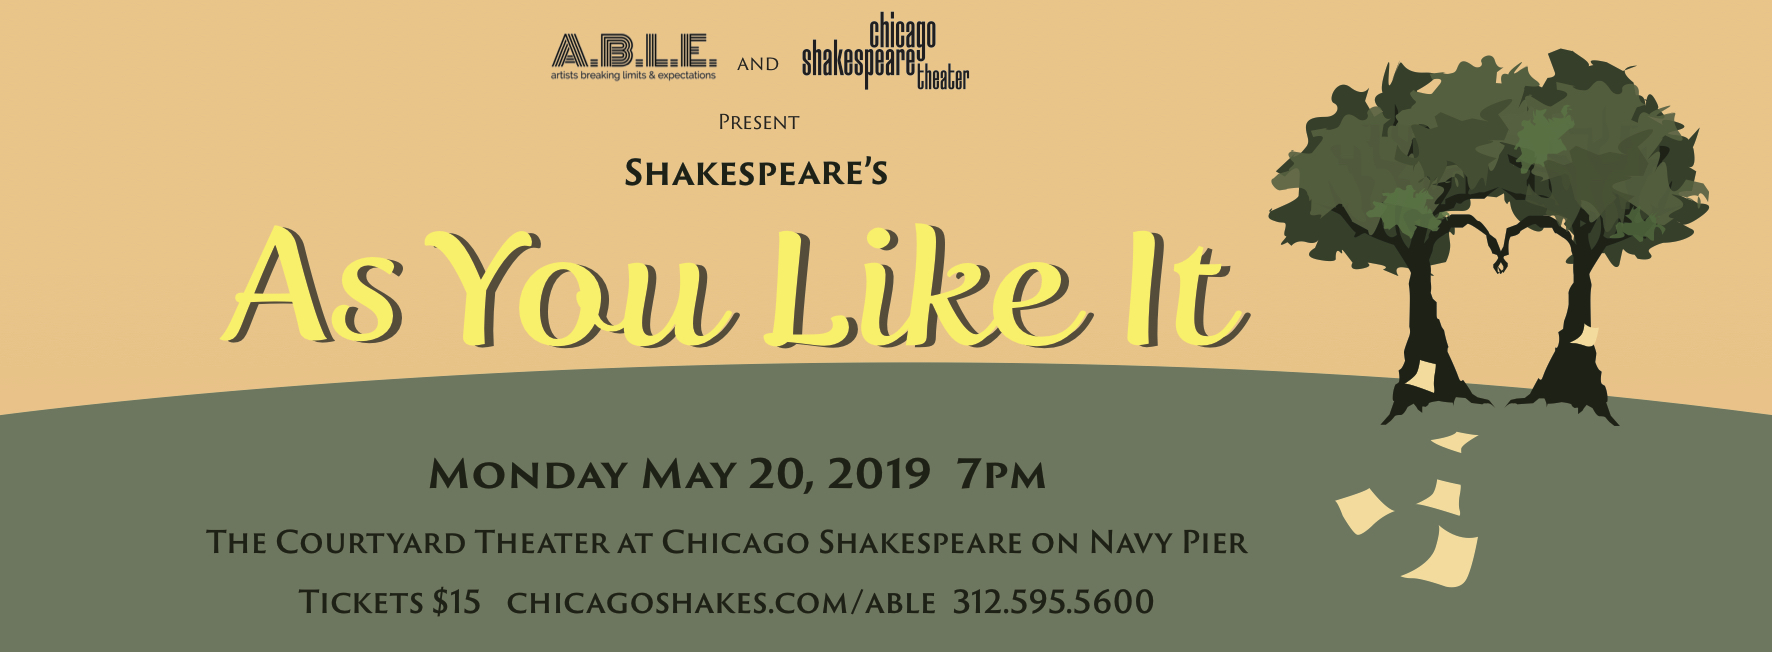 Tickets available at  chicagoshakes.com/able